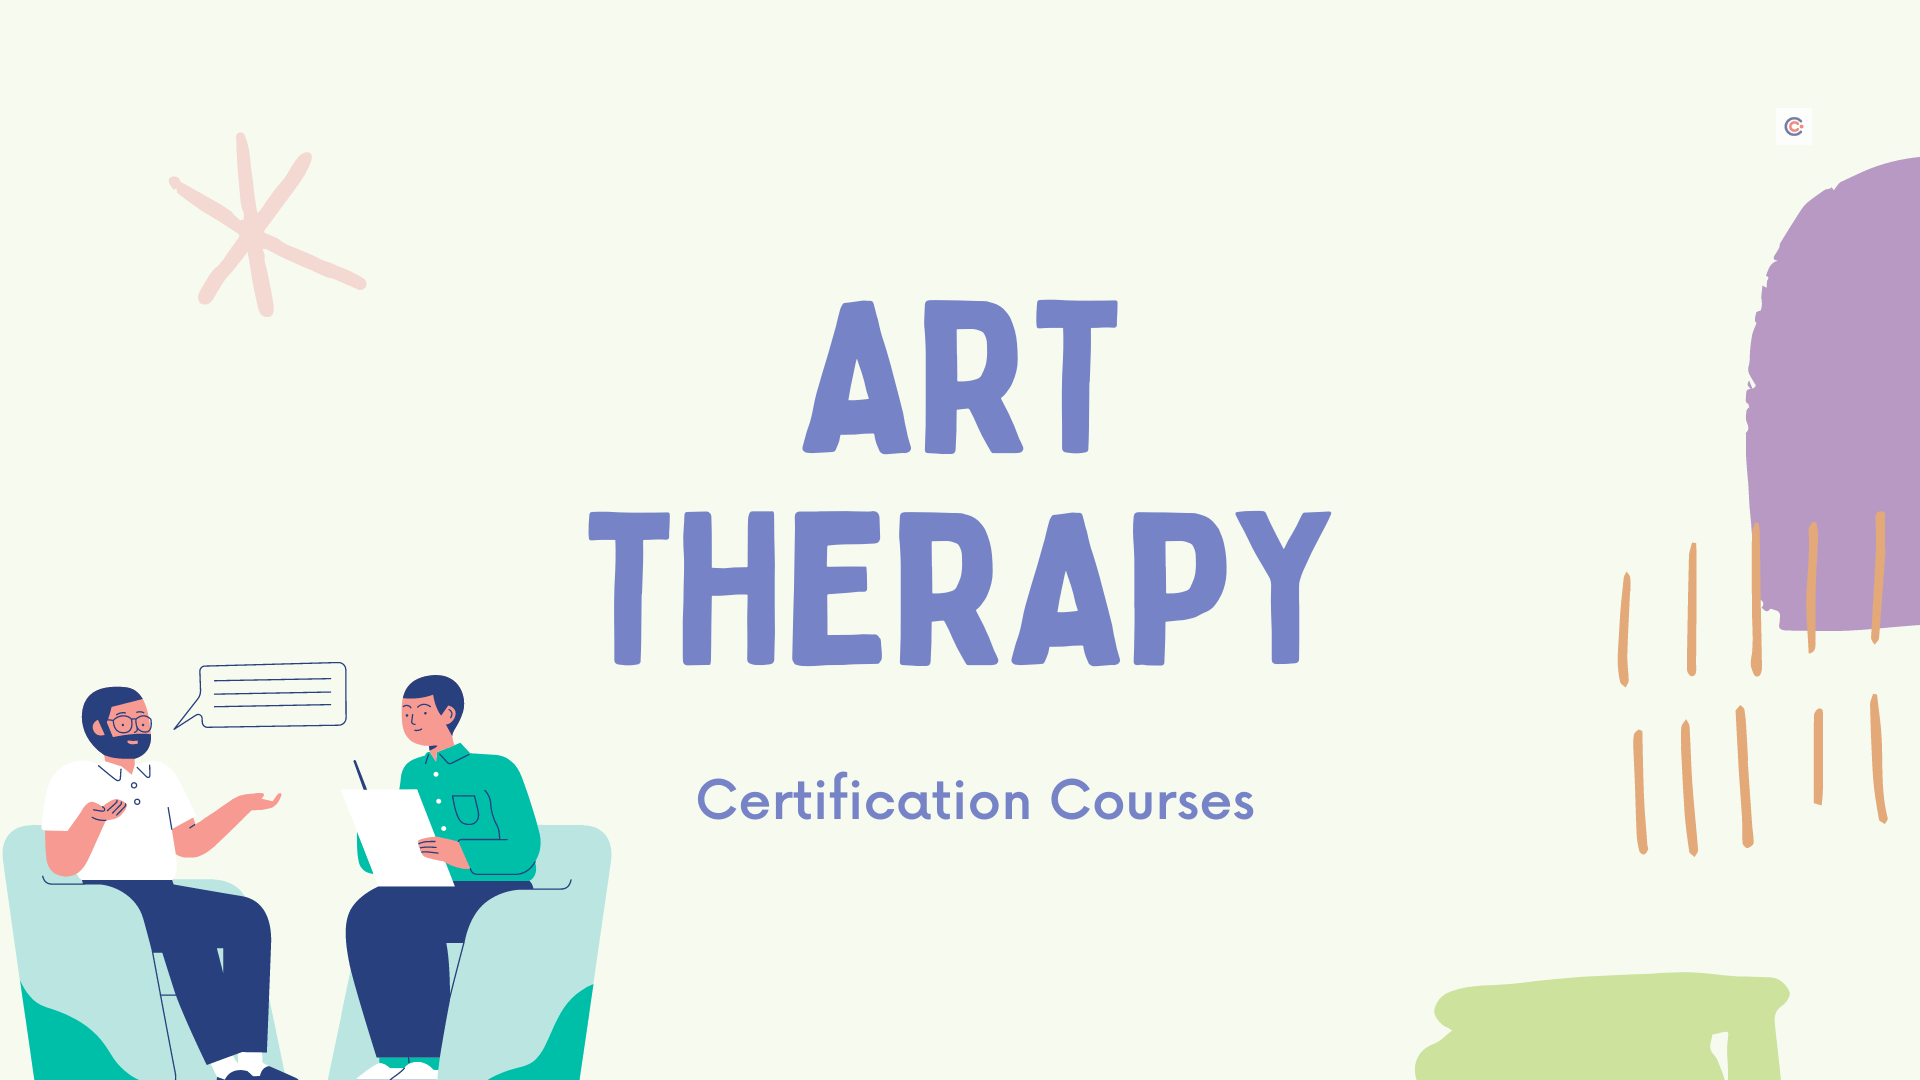 5 Best Art Therapy Certification Courses - Learn Art Therapy Online